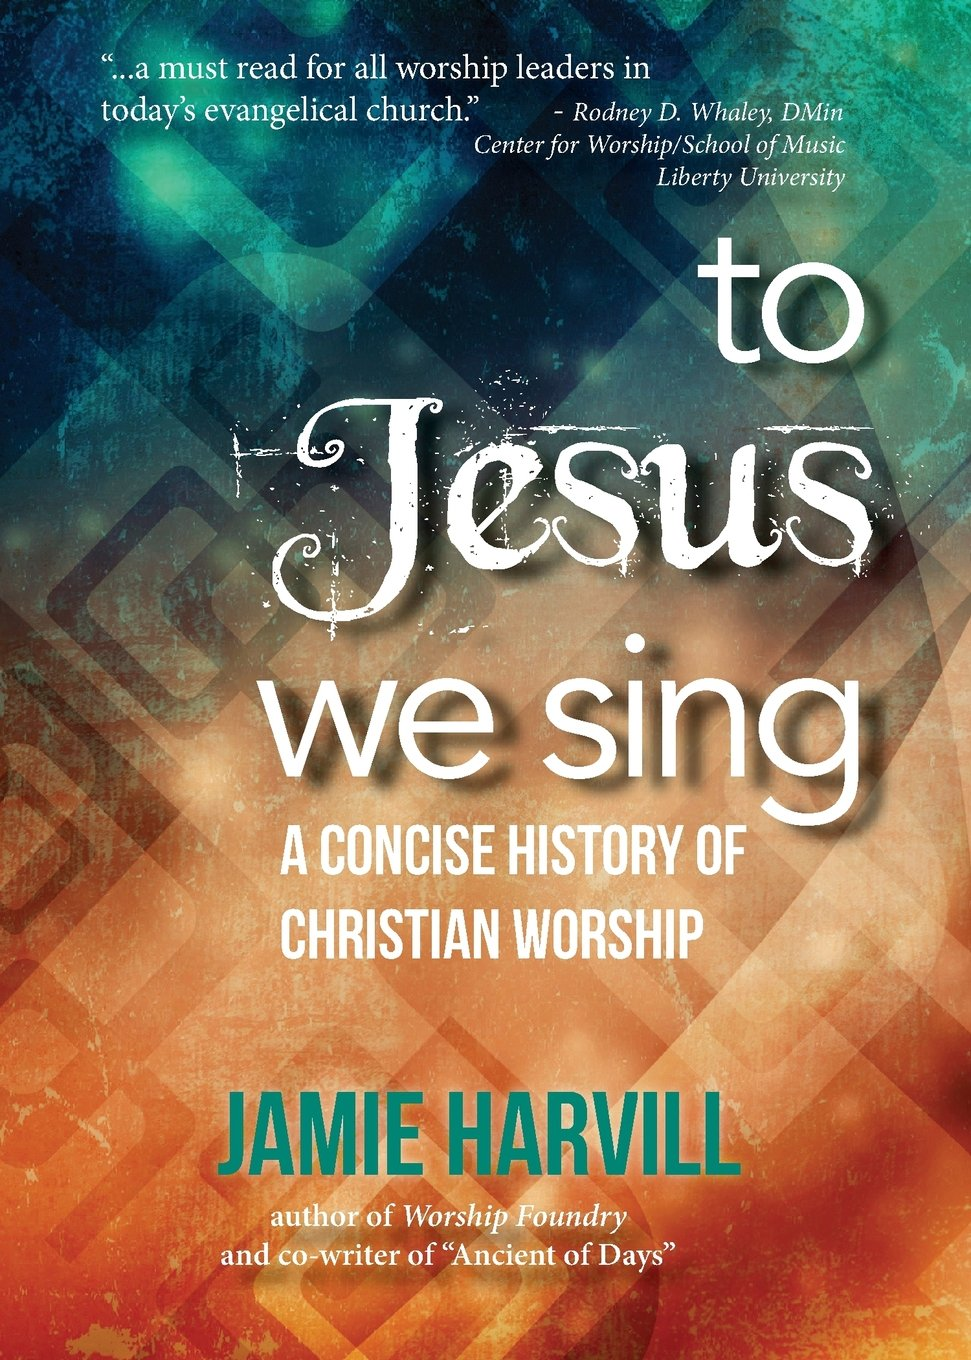 A Concise History of Christian Worship